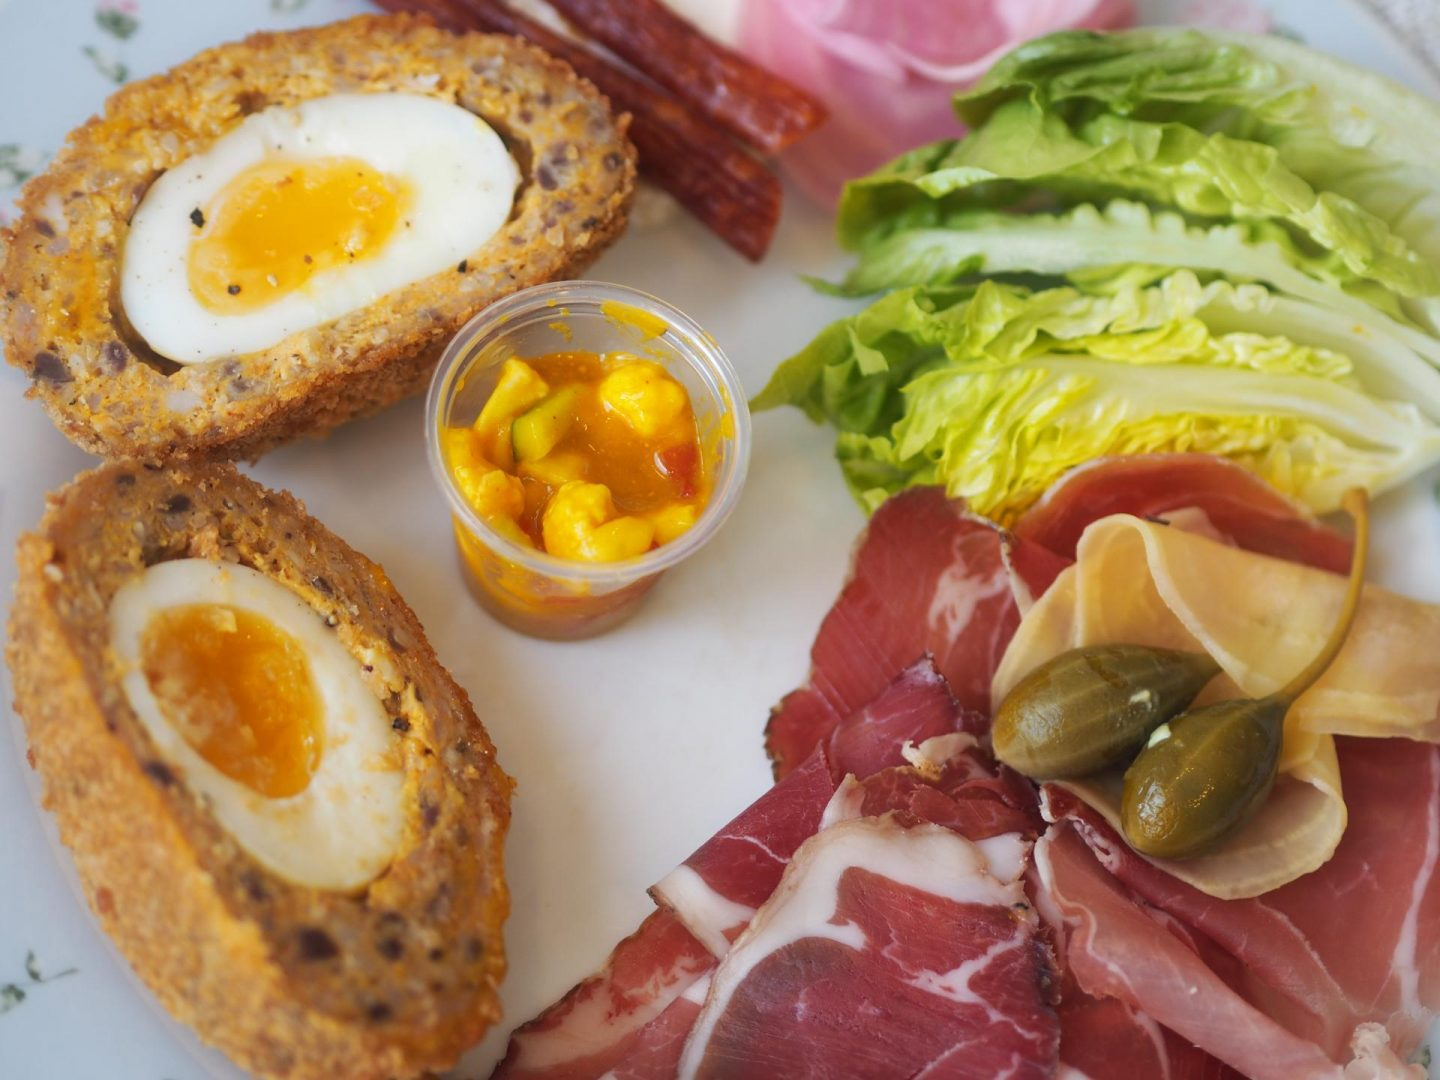 British charcuterie board from award-winning meat suppliers, Cannon & Cannon